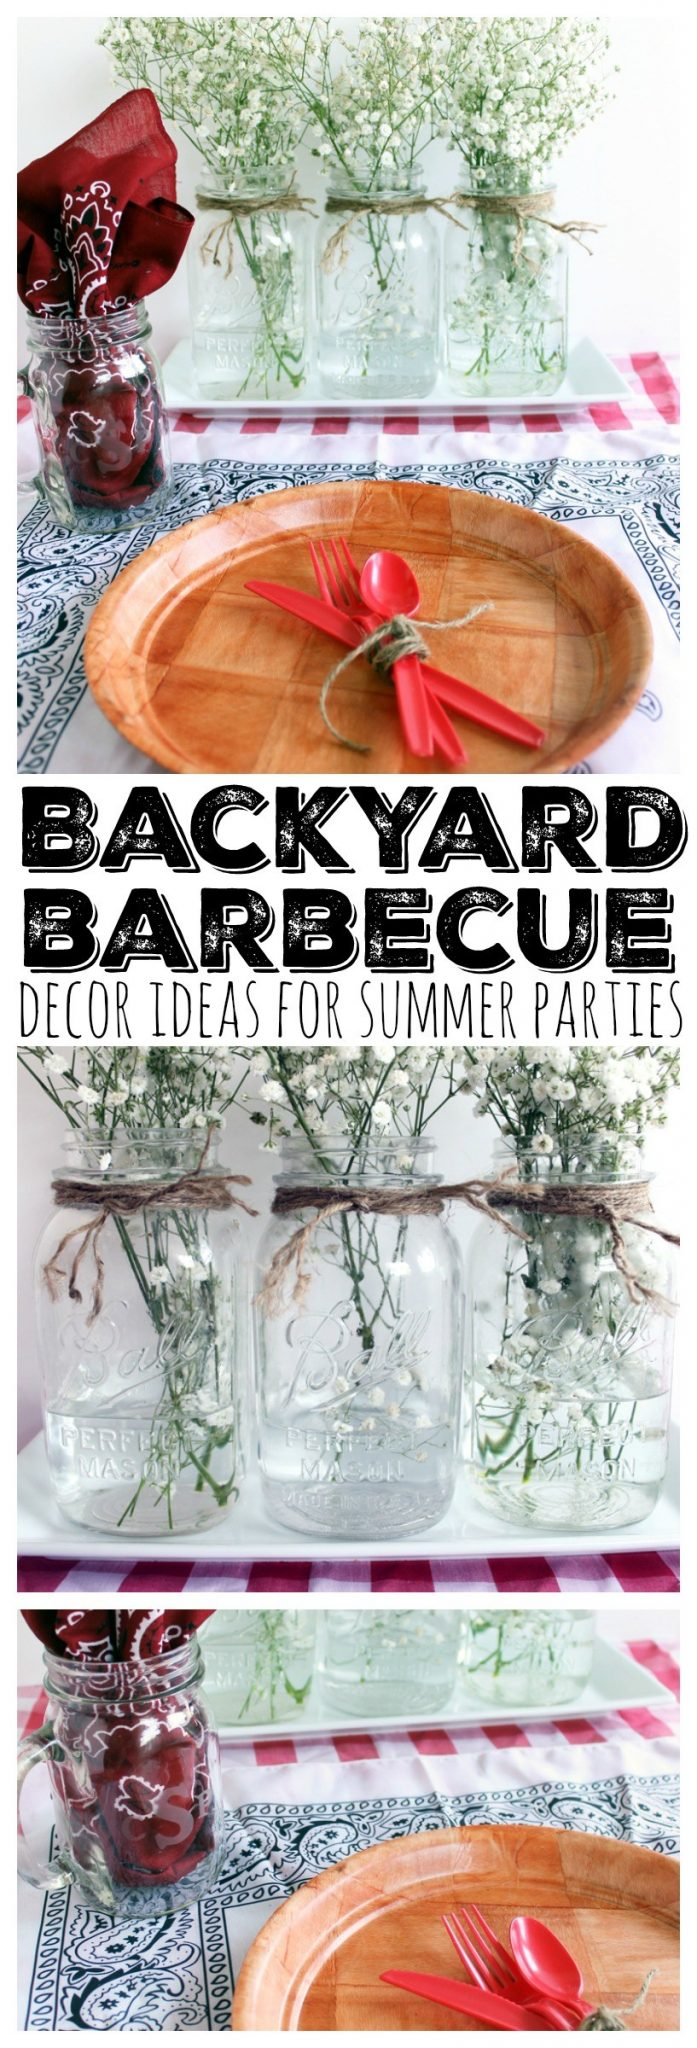 Get ideas for backyard parties! Great ideas for decor!